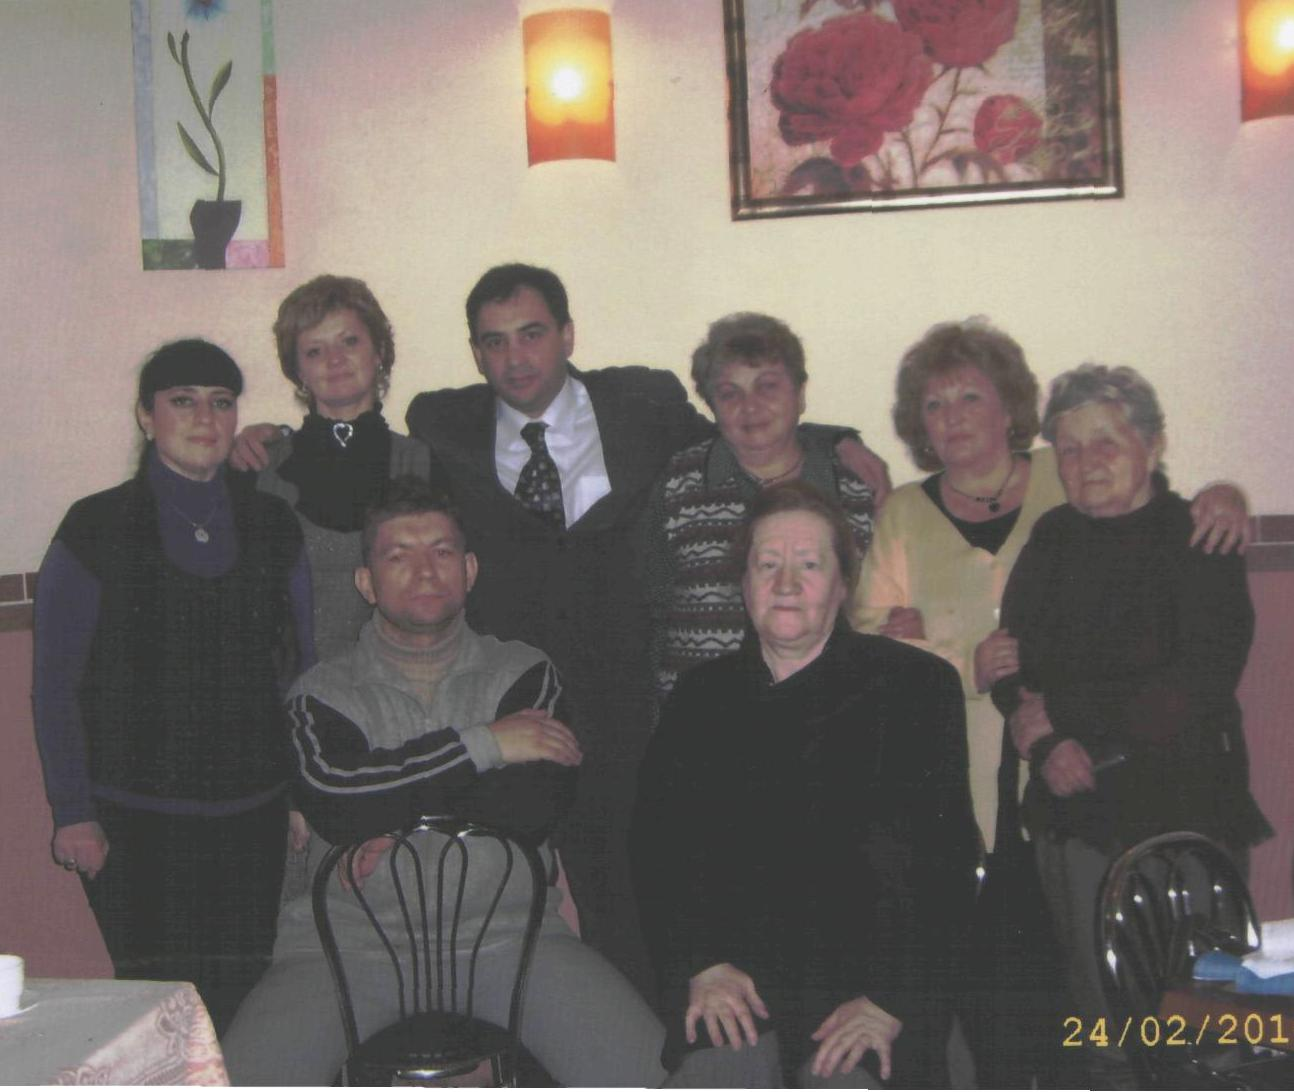 Members of Ivankov Jewosh community in 2000's